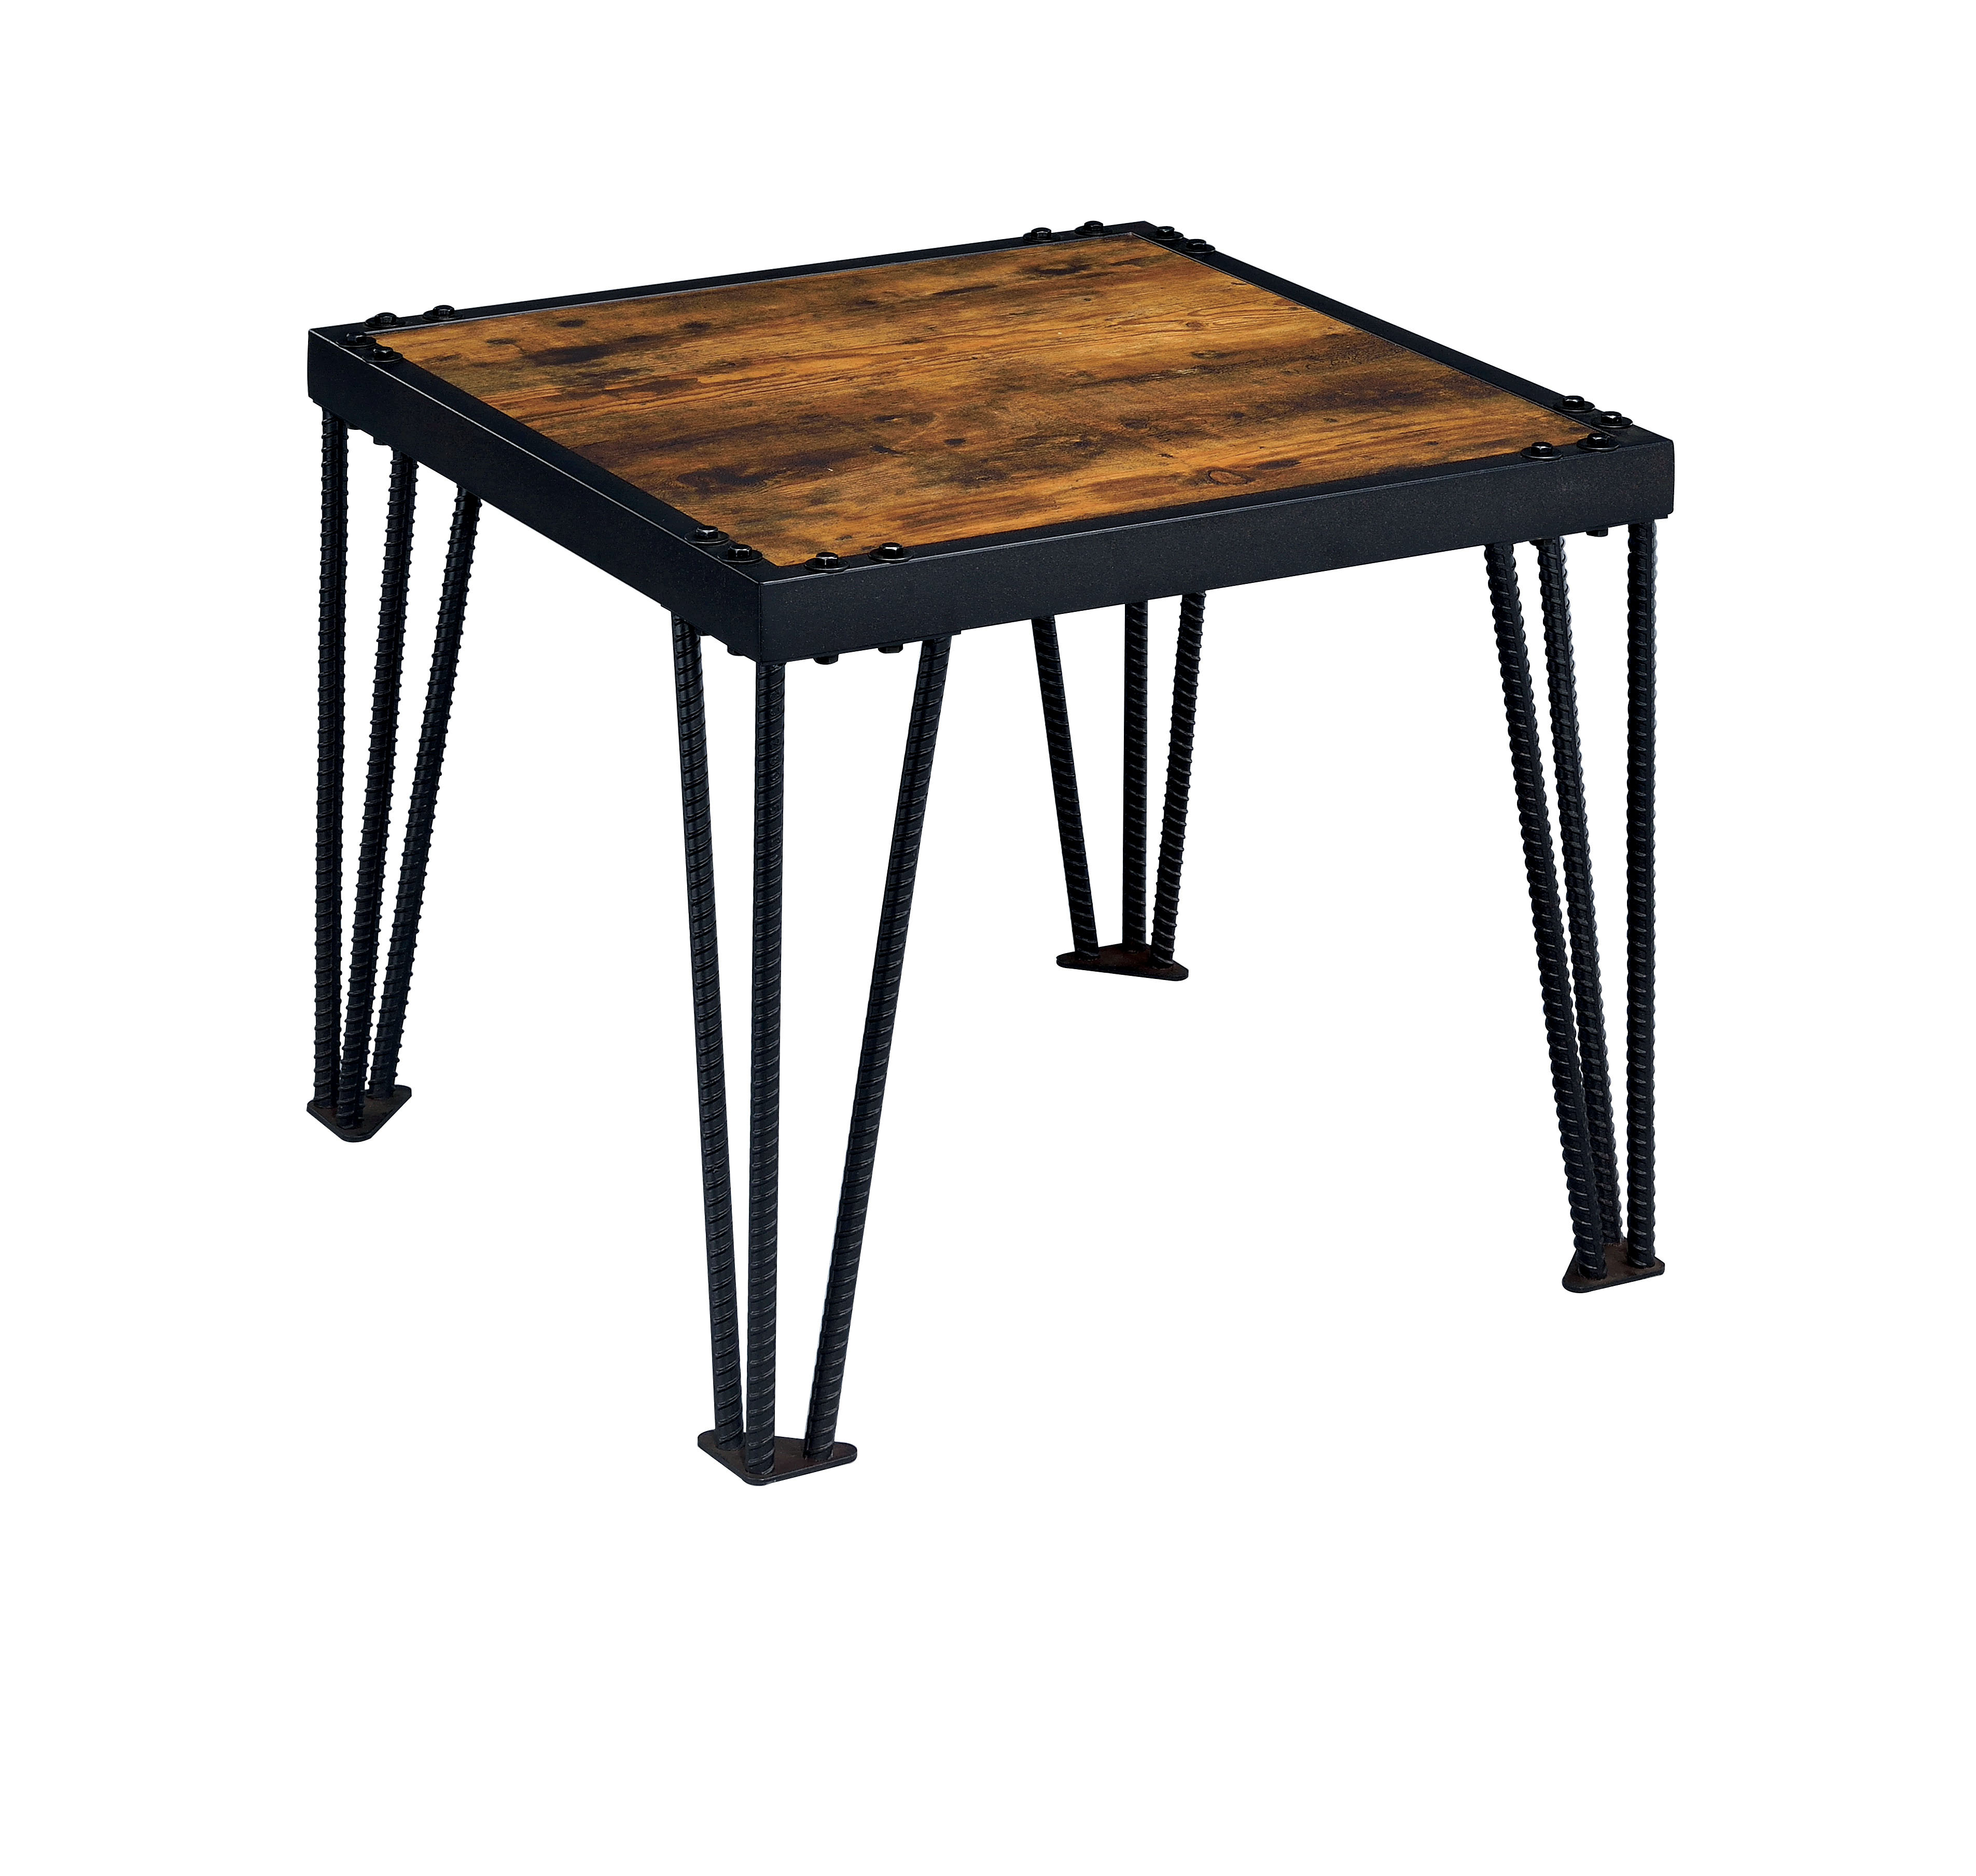 furniture america mally industrial style end table inch high farmhouse accent mosaic garden bench round wood top coffee white wicker counter set ikea wall console small dining and